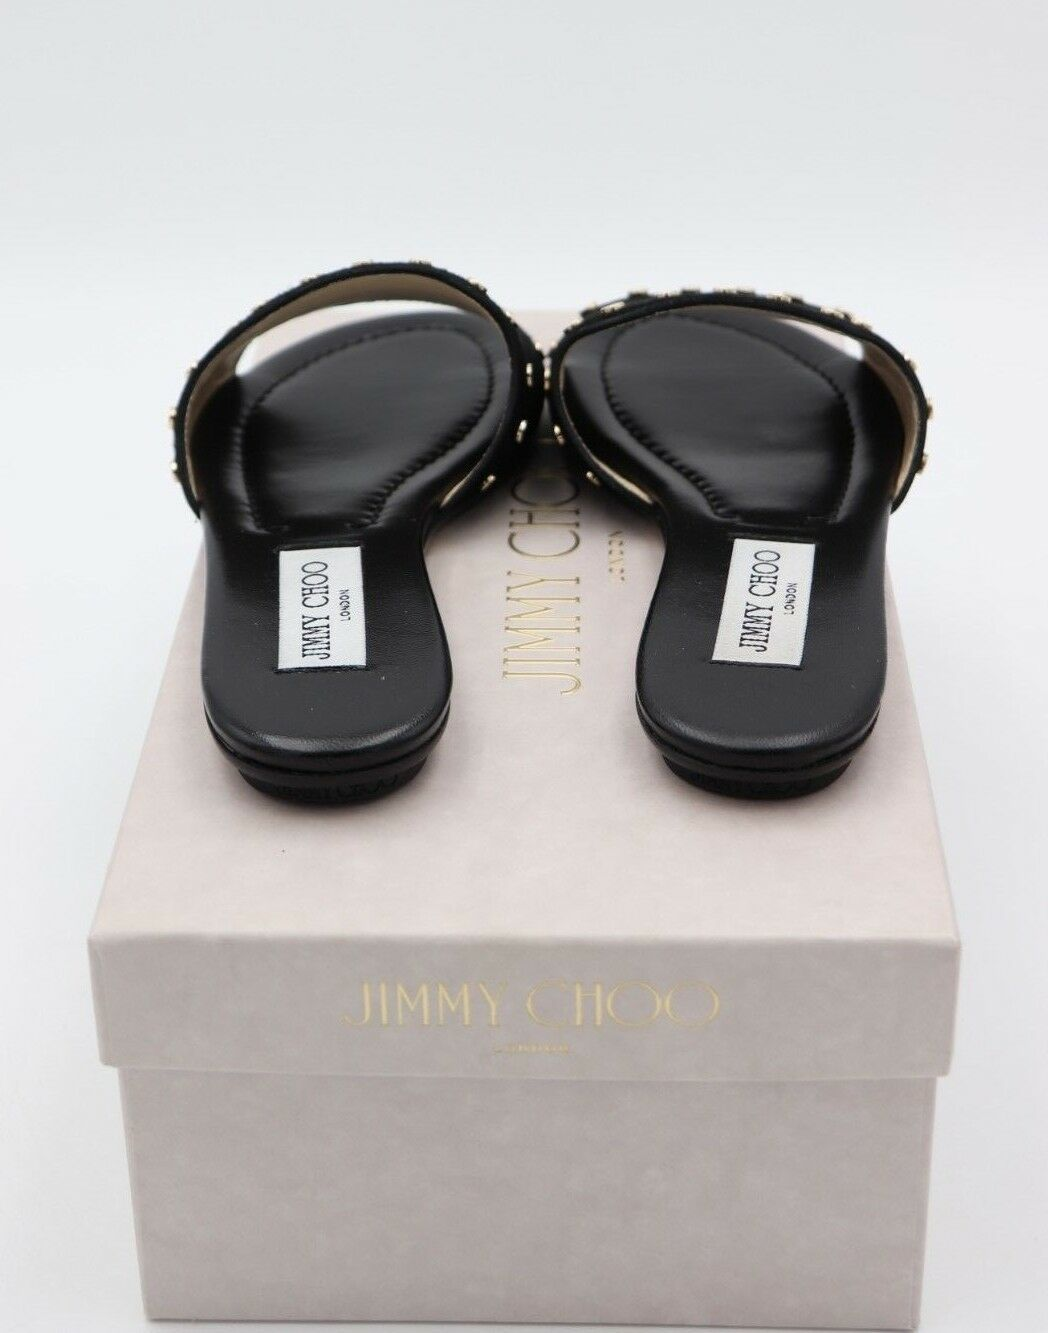 NIB Jimmy Choo Nanda Studded Black Suede Slides Sandals 6 36